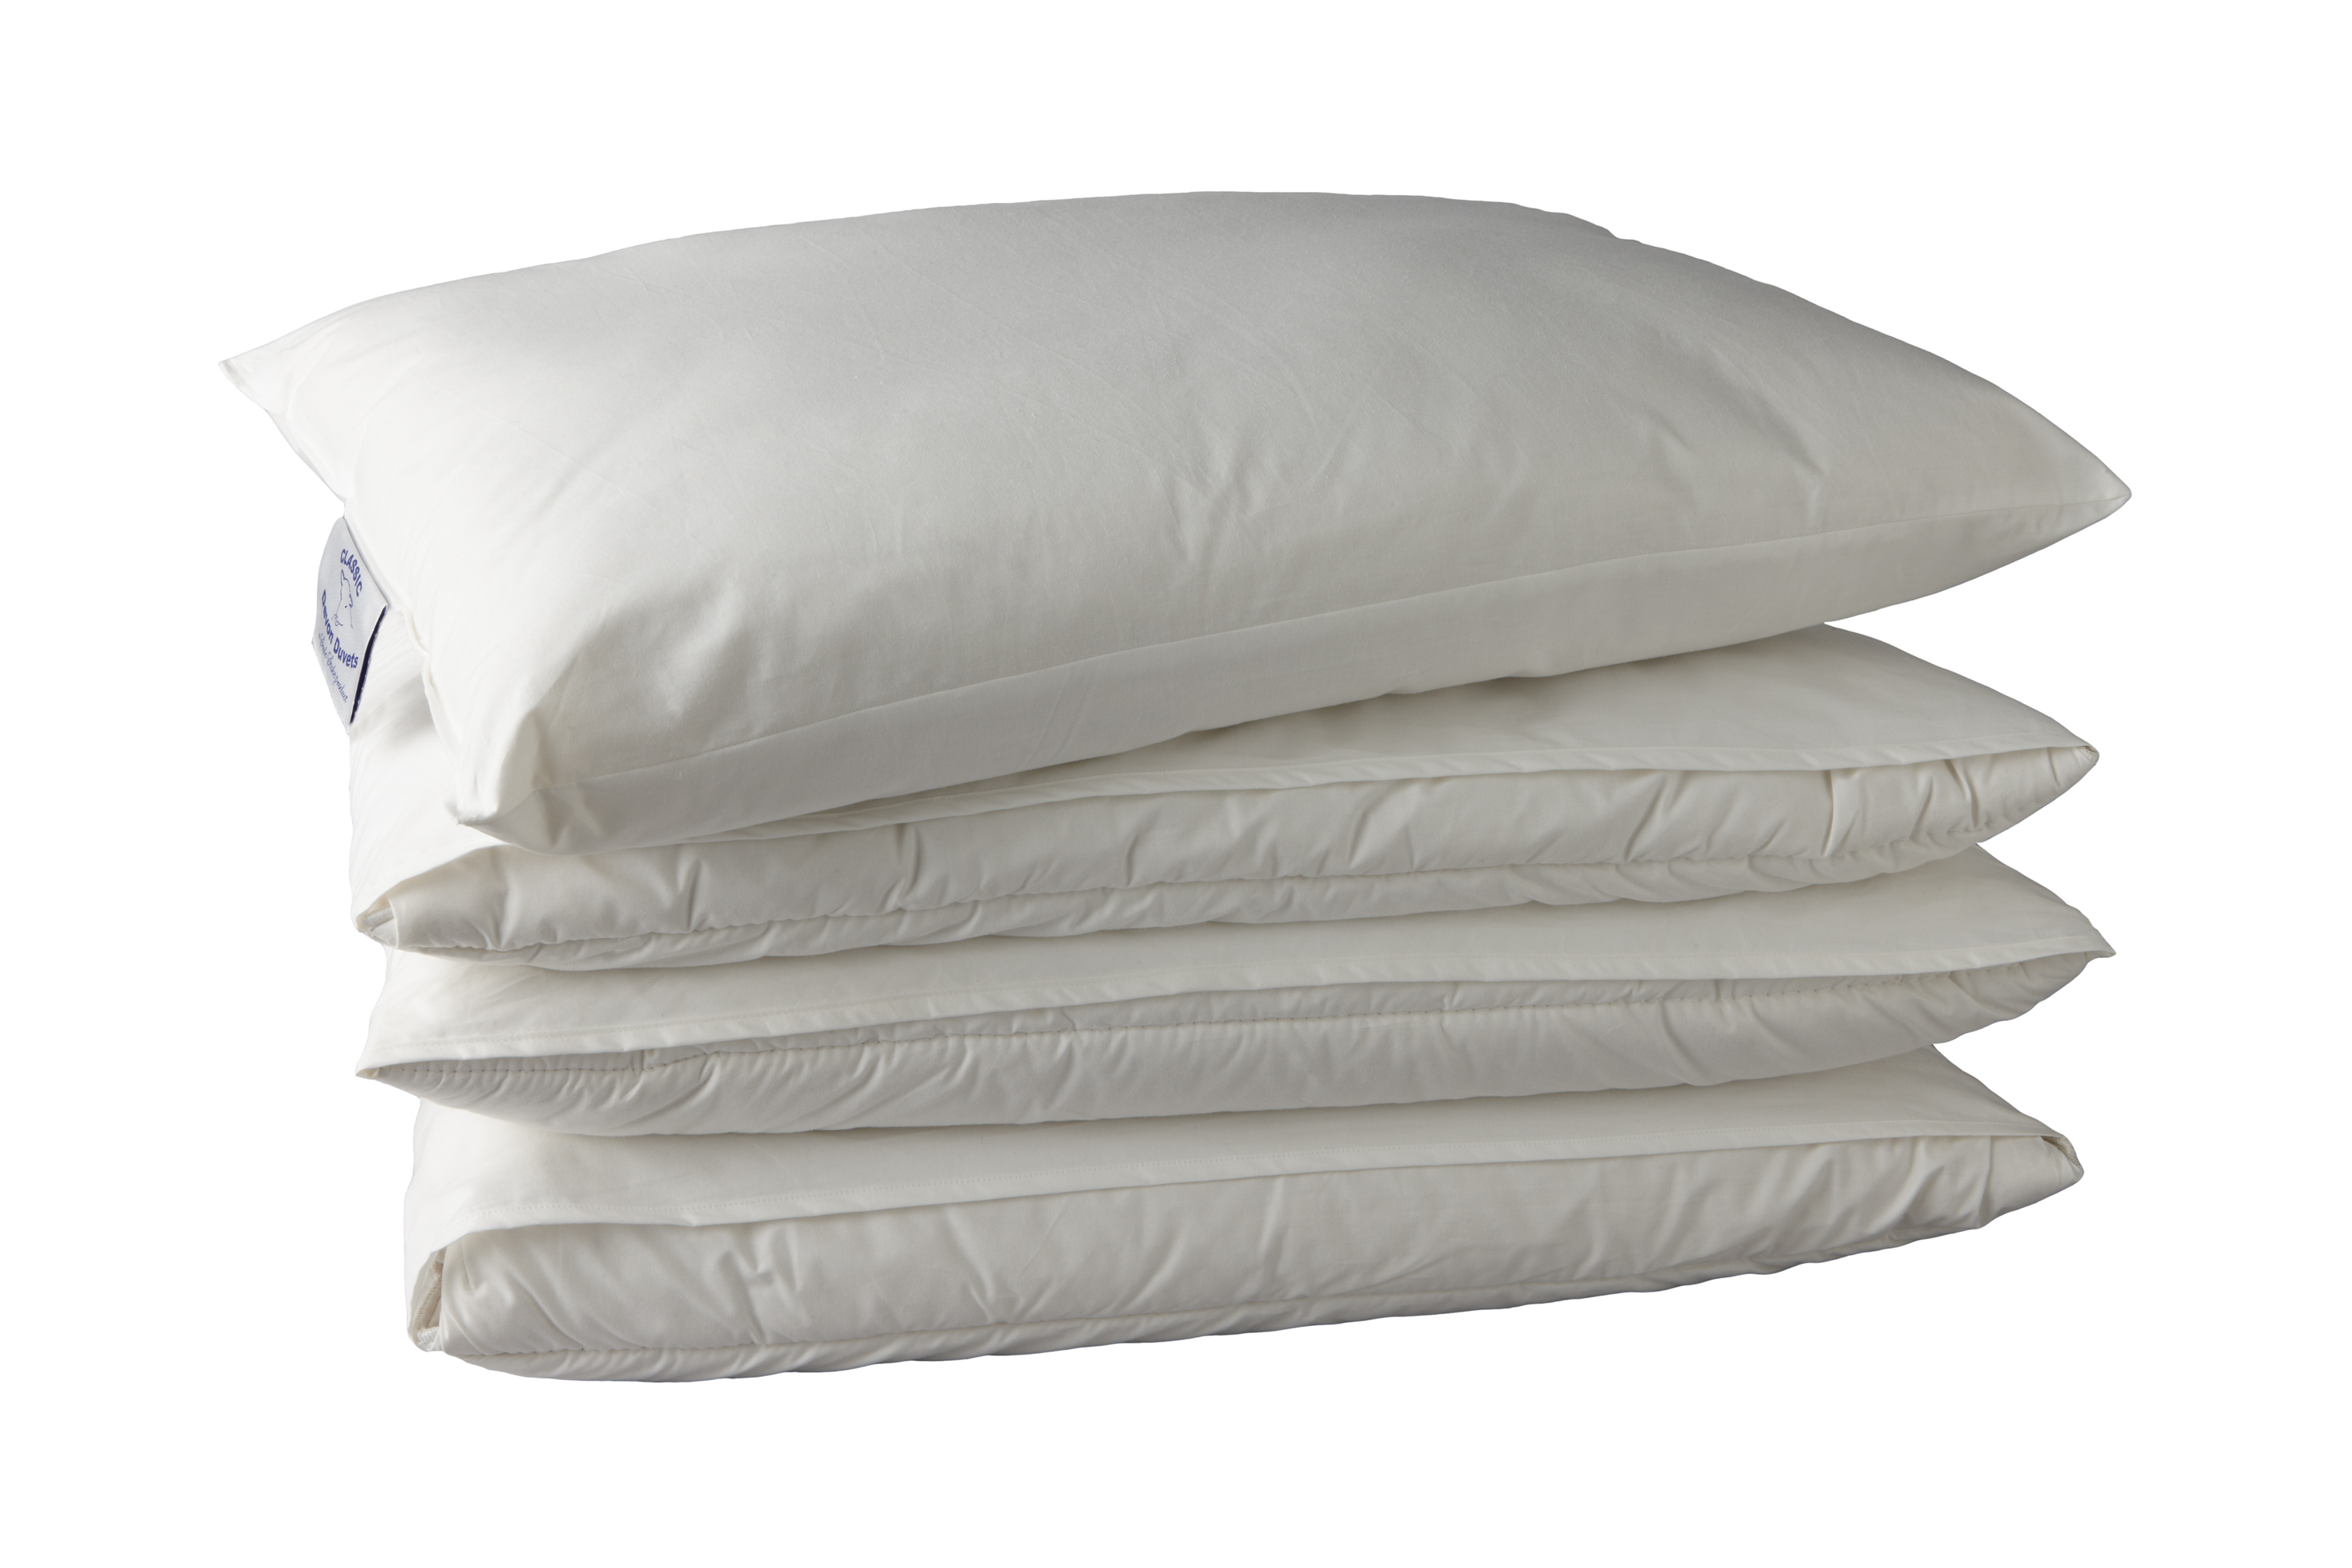 Why are wool pillows perfect for Winter?